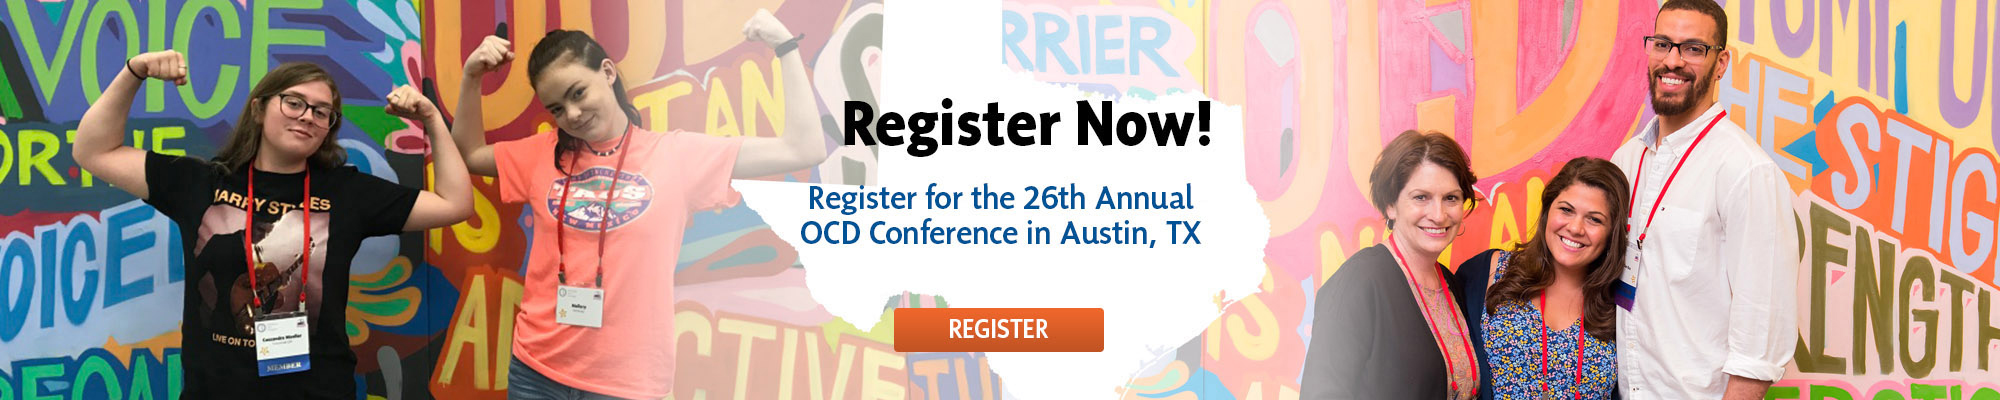 Register or the 26th Annual OCD Conferece